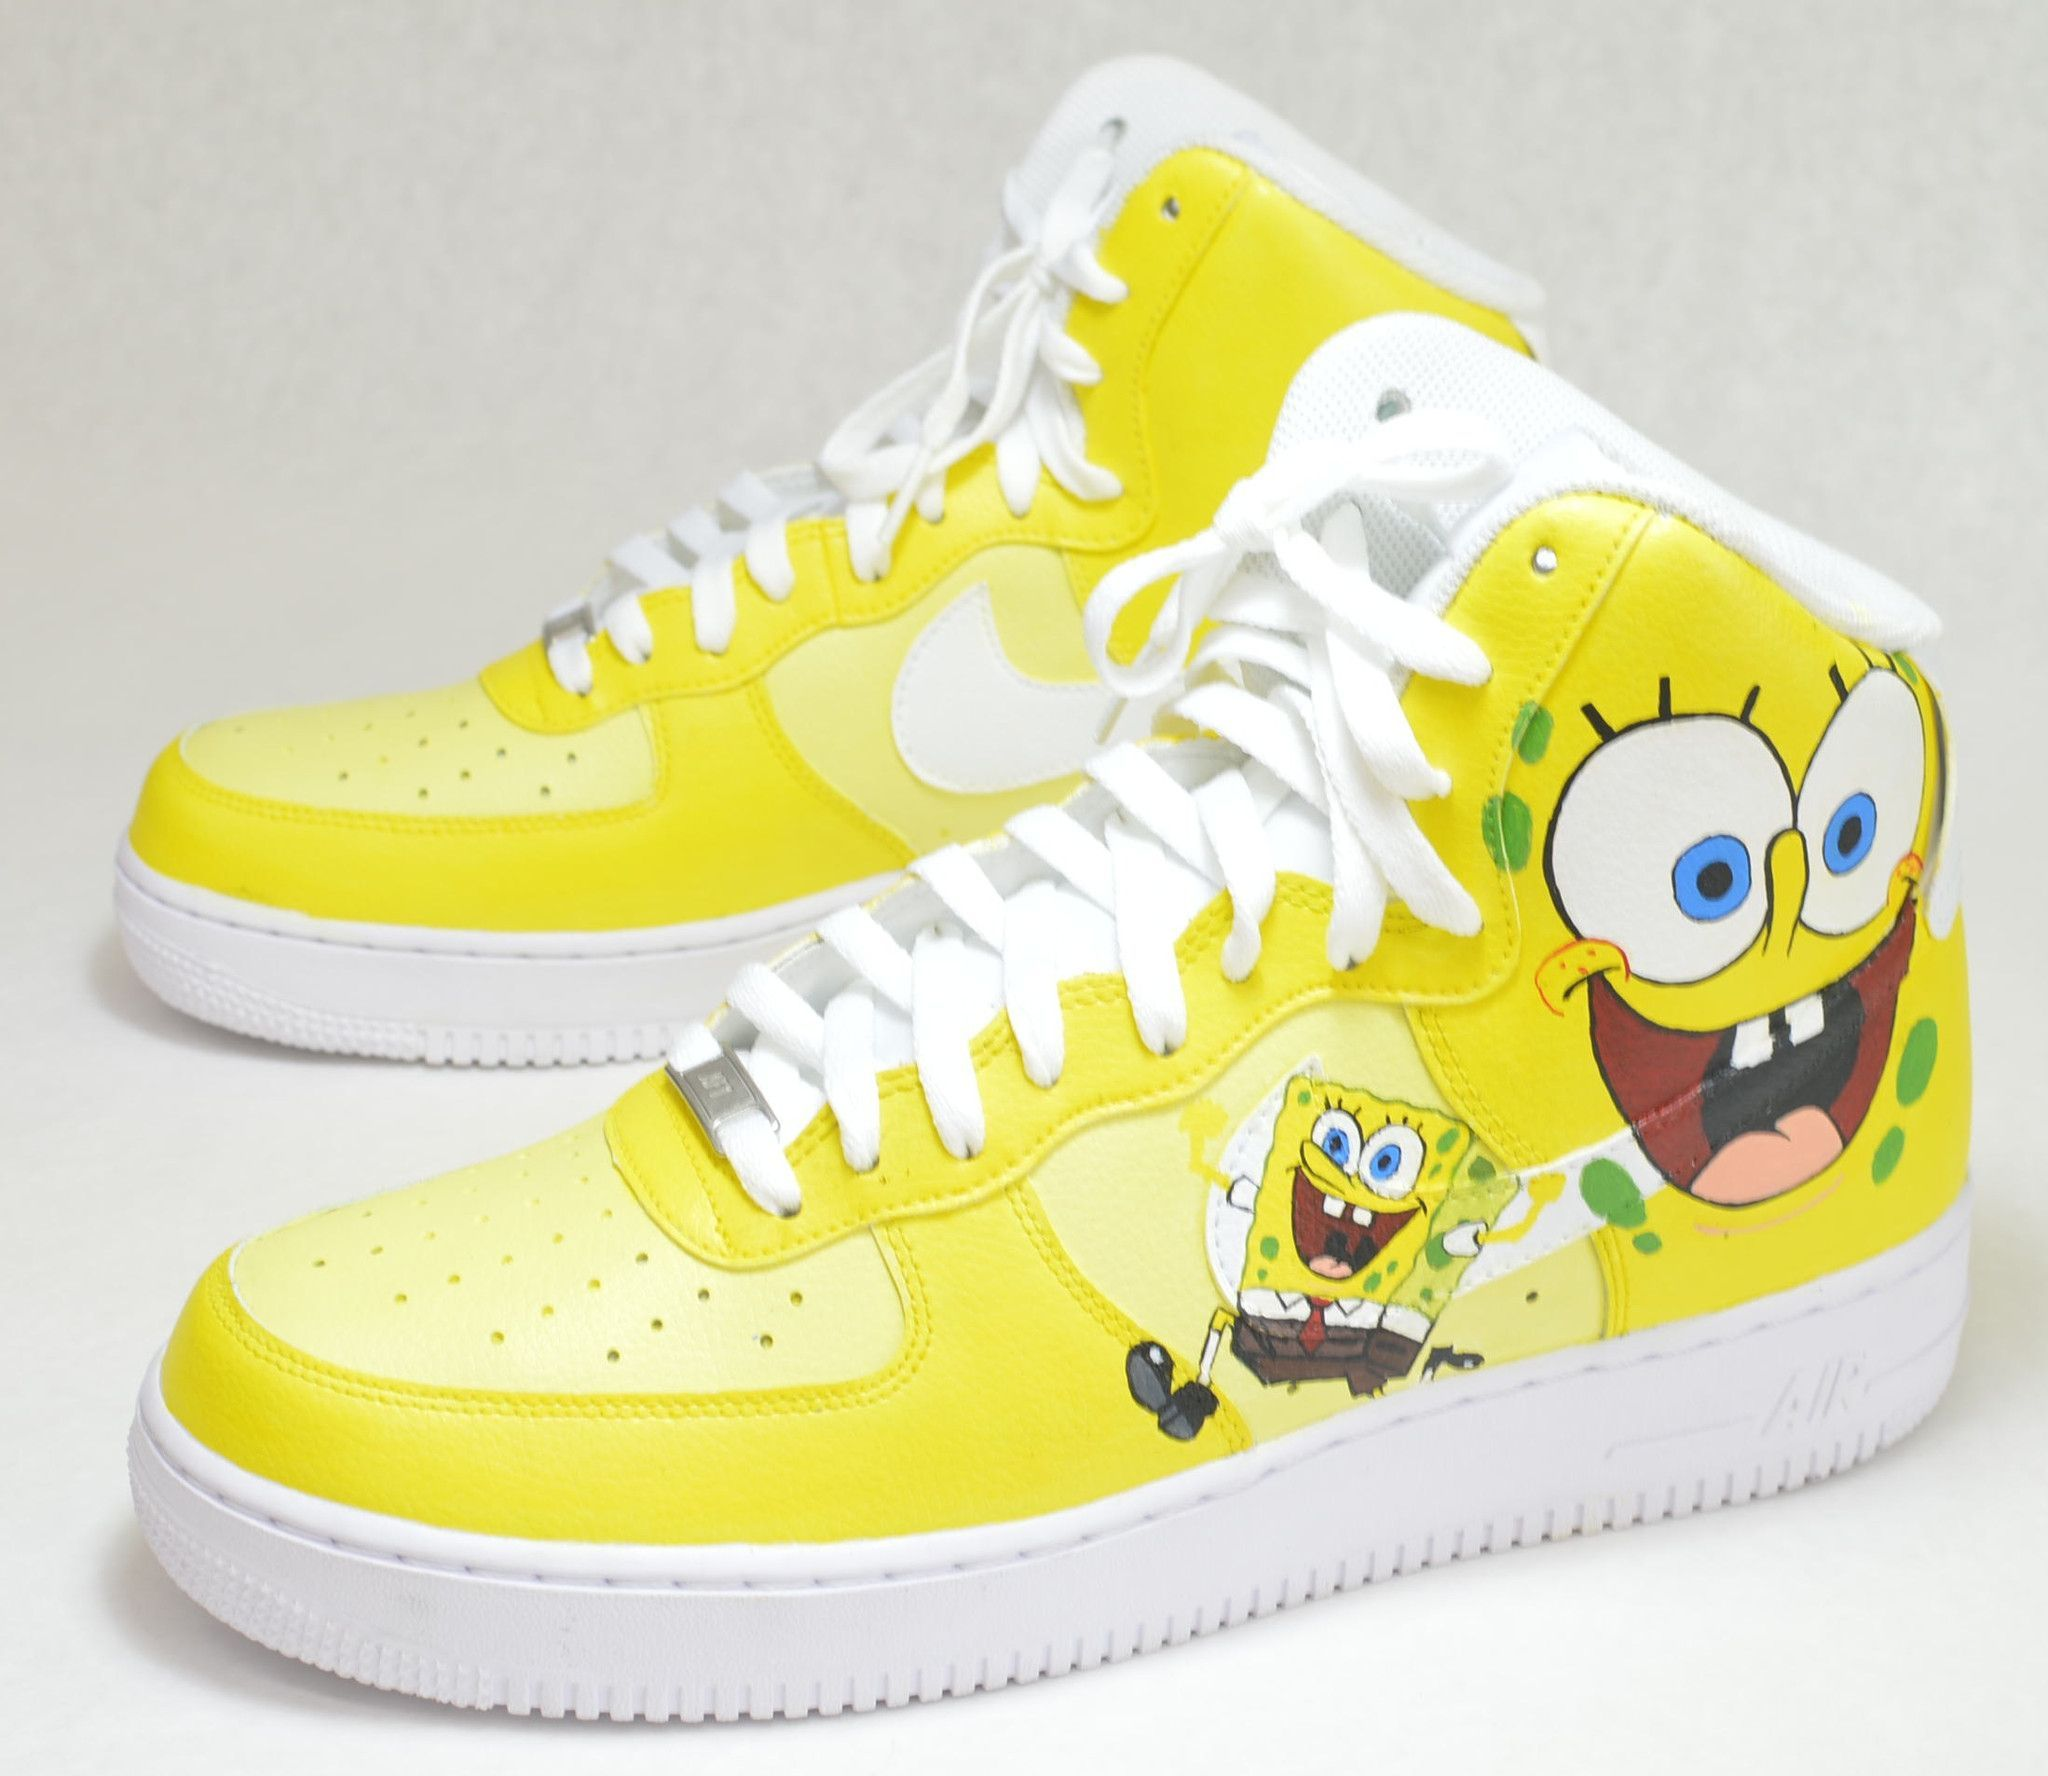 Spongebob SquarePants Nike AF1 High Custom Painted